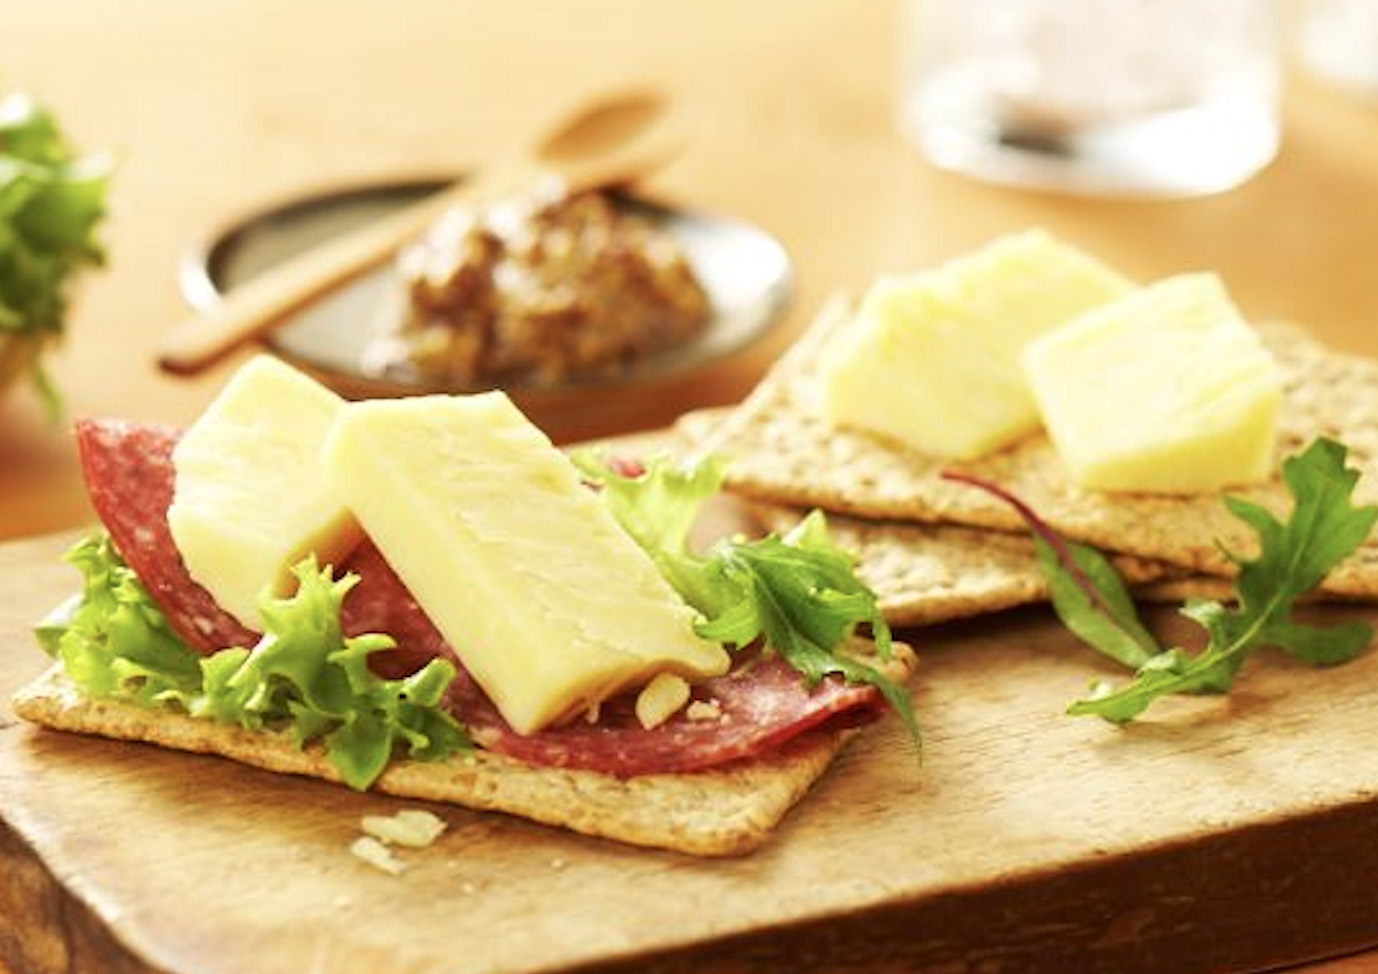 Cheese and Crackers FMCG Food styling